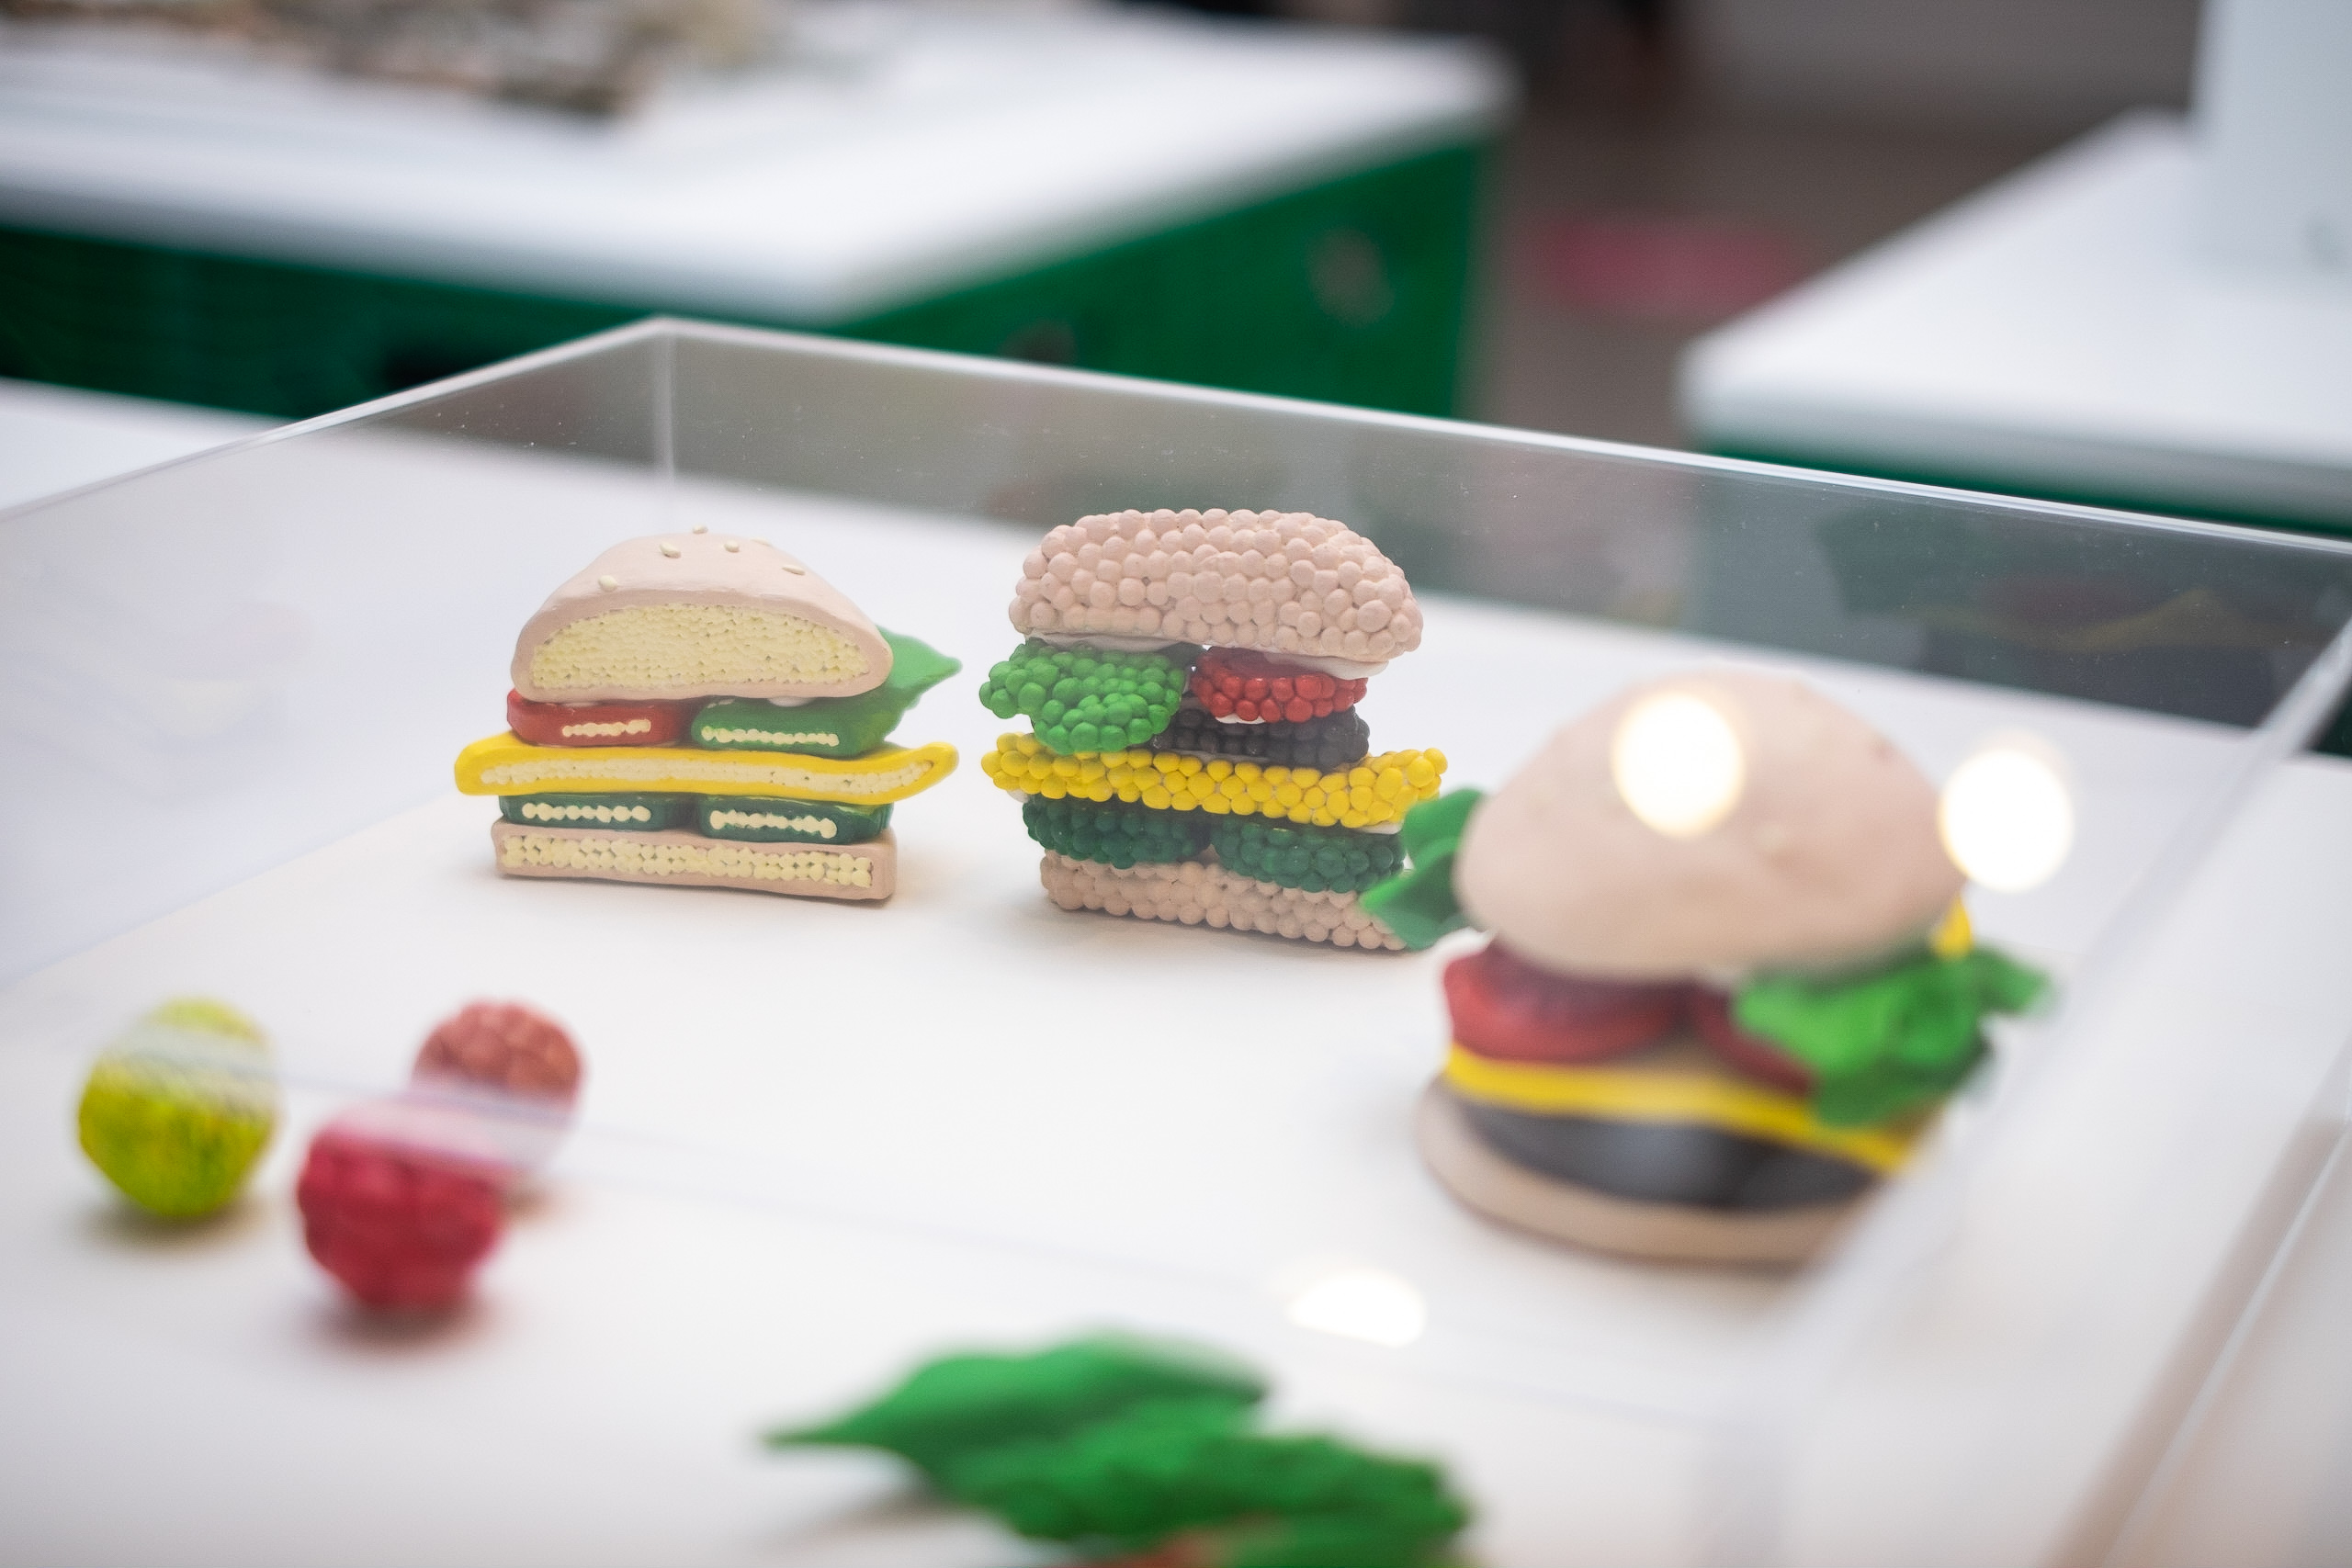 Digestive Food is a submission featuring the artists idea of a perfectly digestible food, leaving no wasted nutrients.